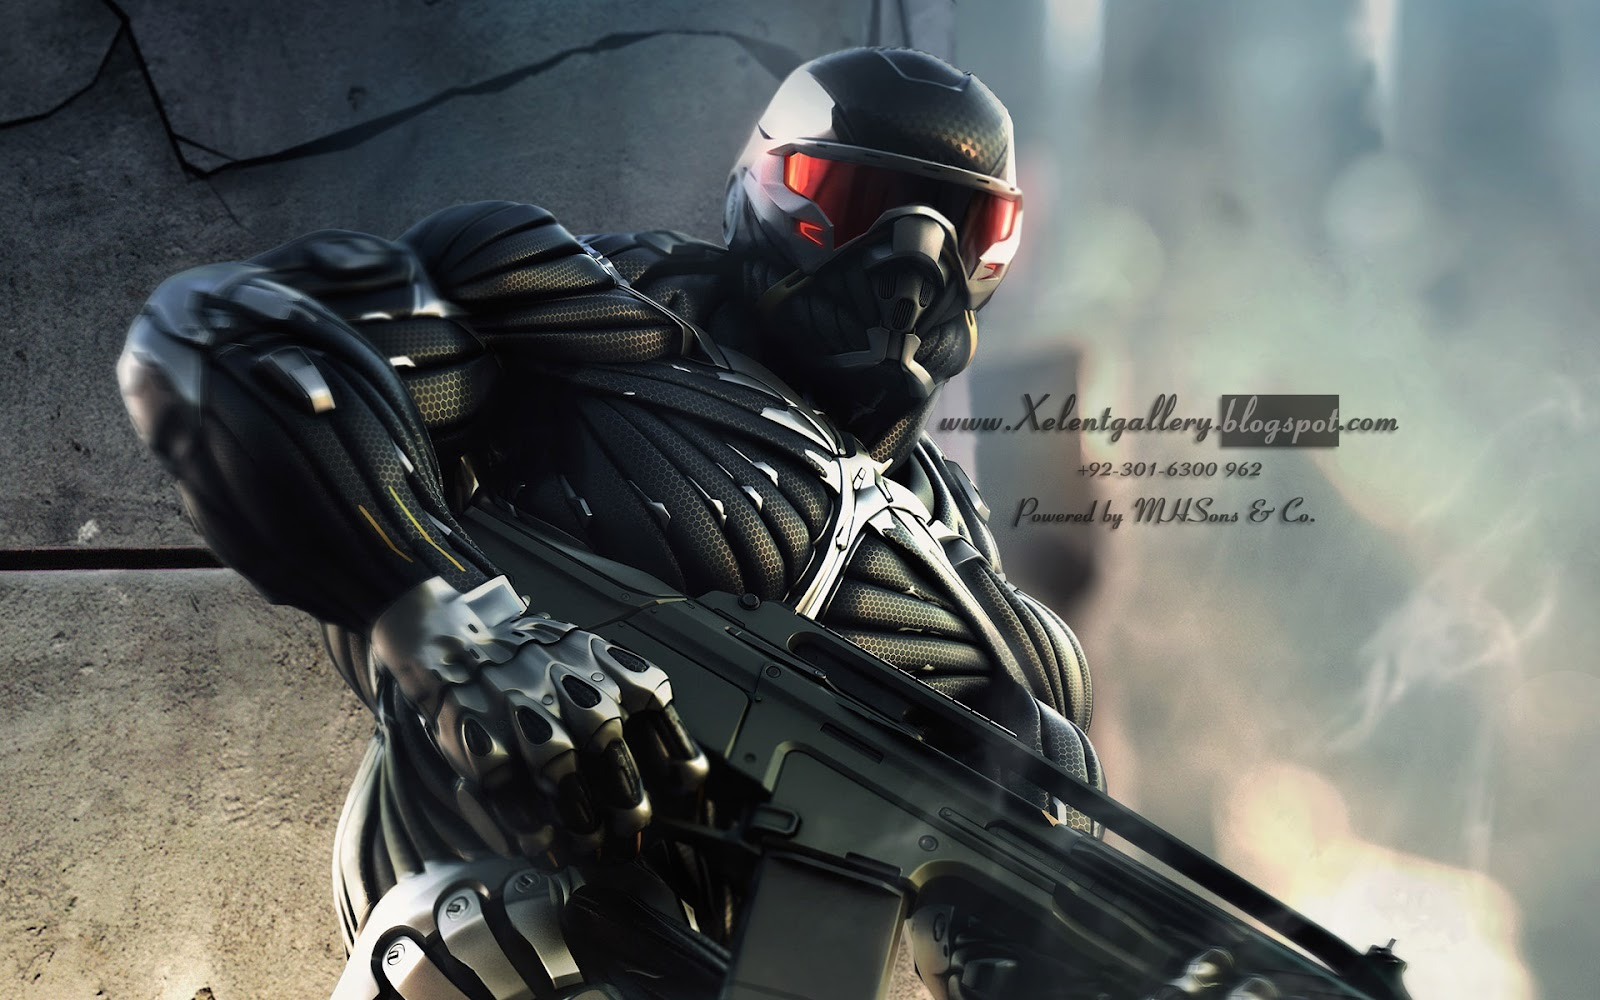 Hd game wallpaper pack 1920x1200 xelent gallery - Games hd wallpapers 1920x1200 ...